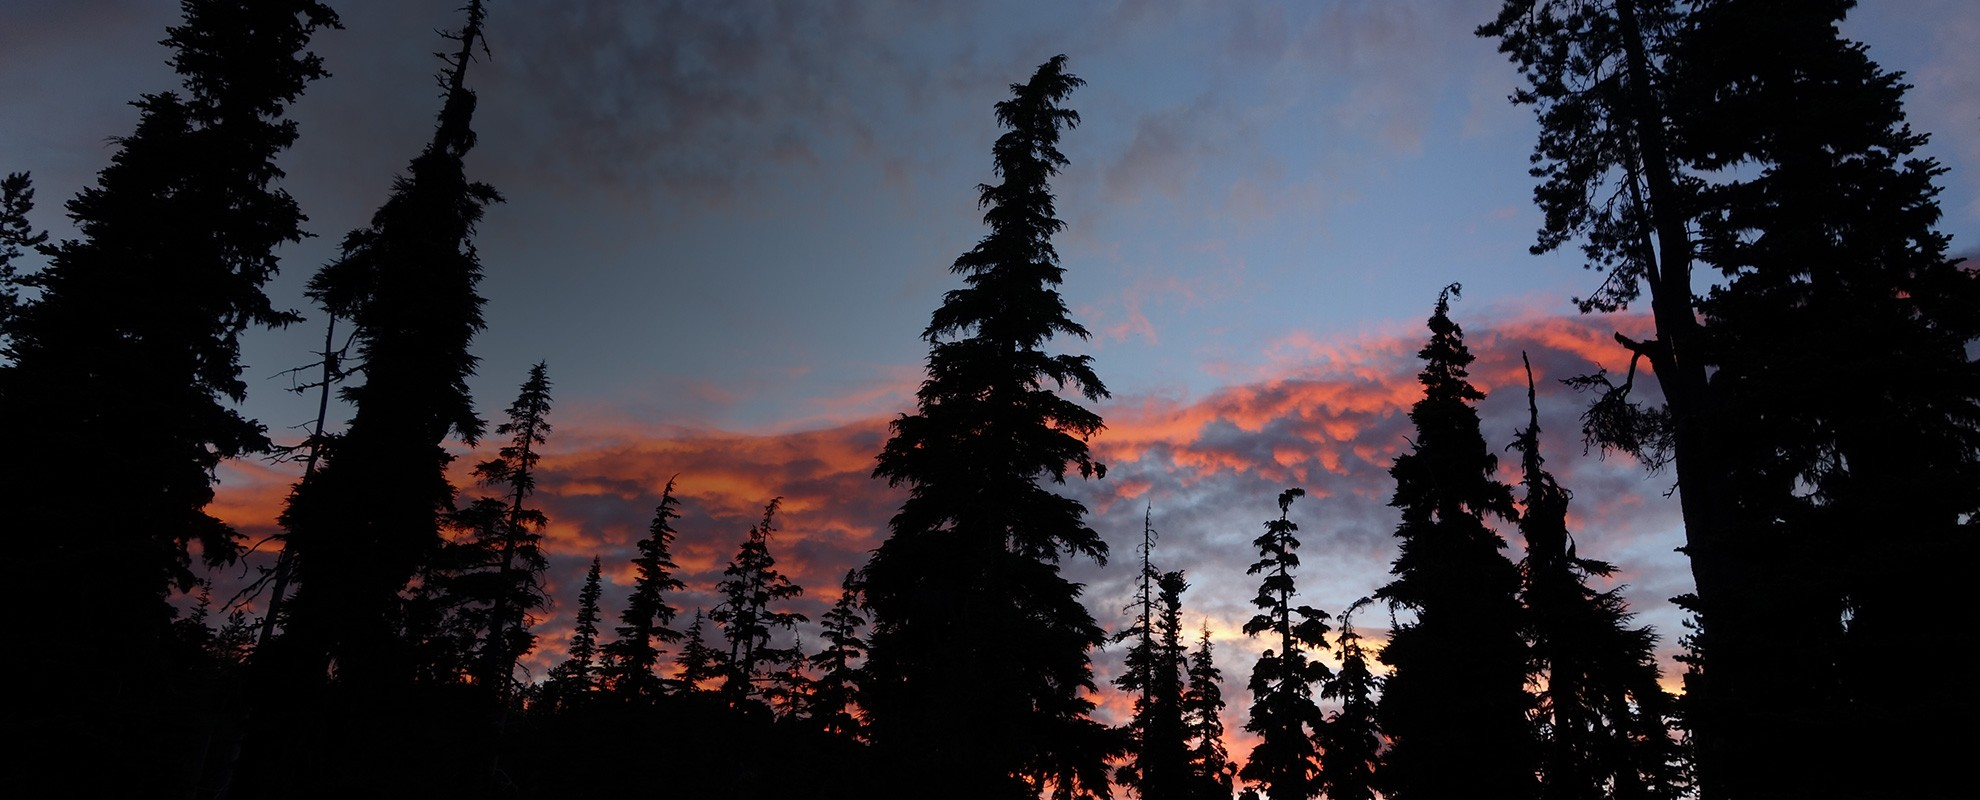 Sunset paints the sky behind a treeline near Crater Lake in Oregon.